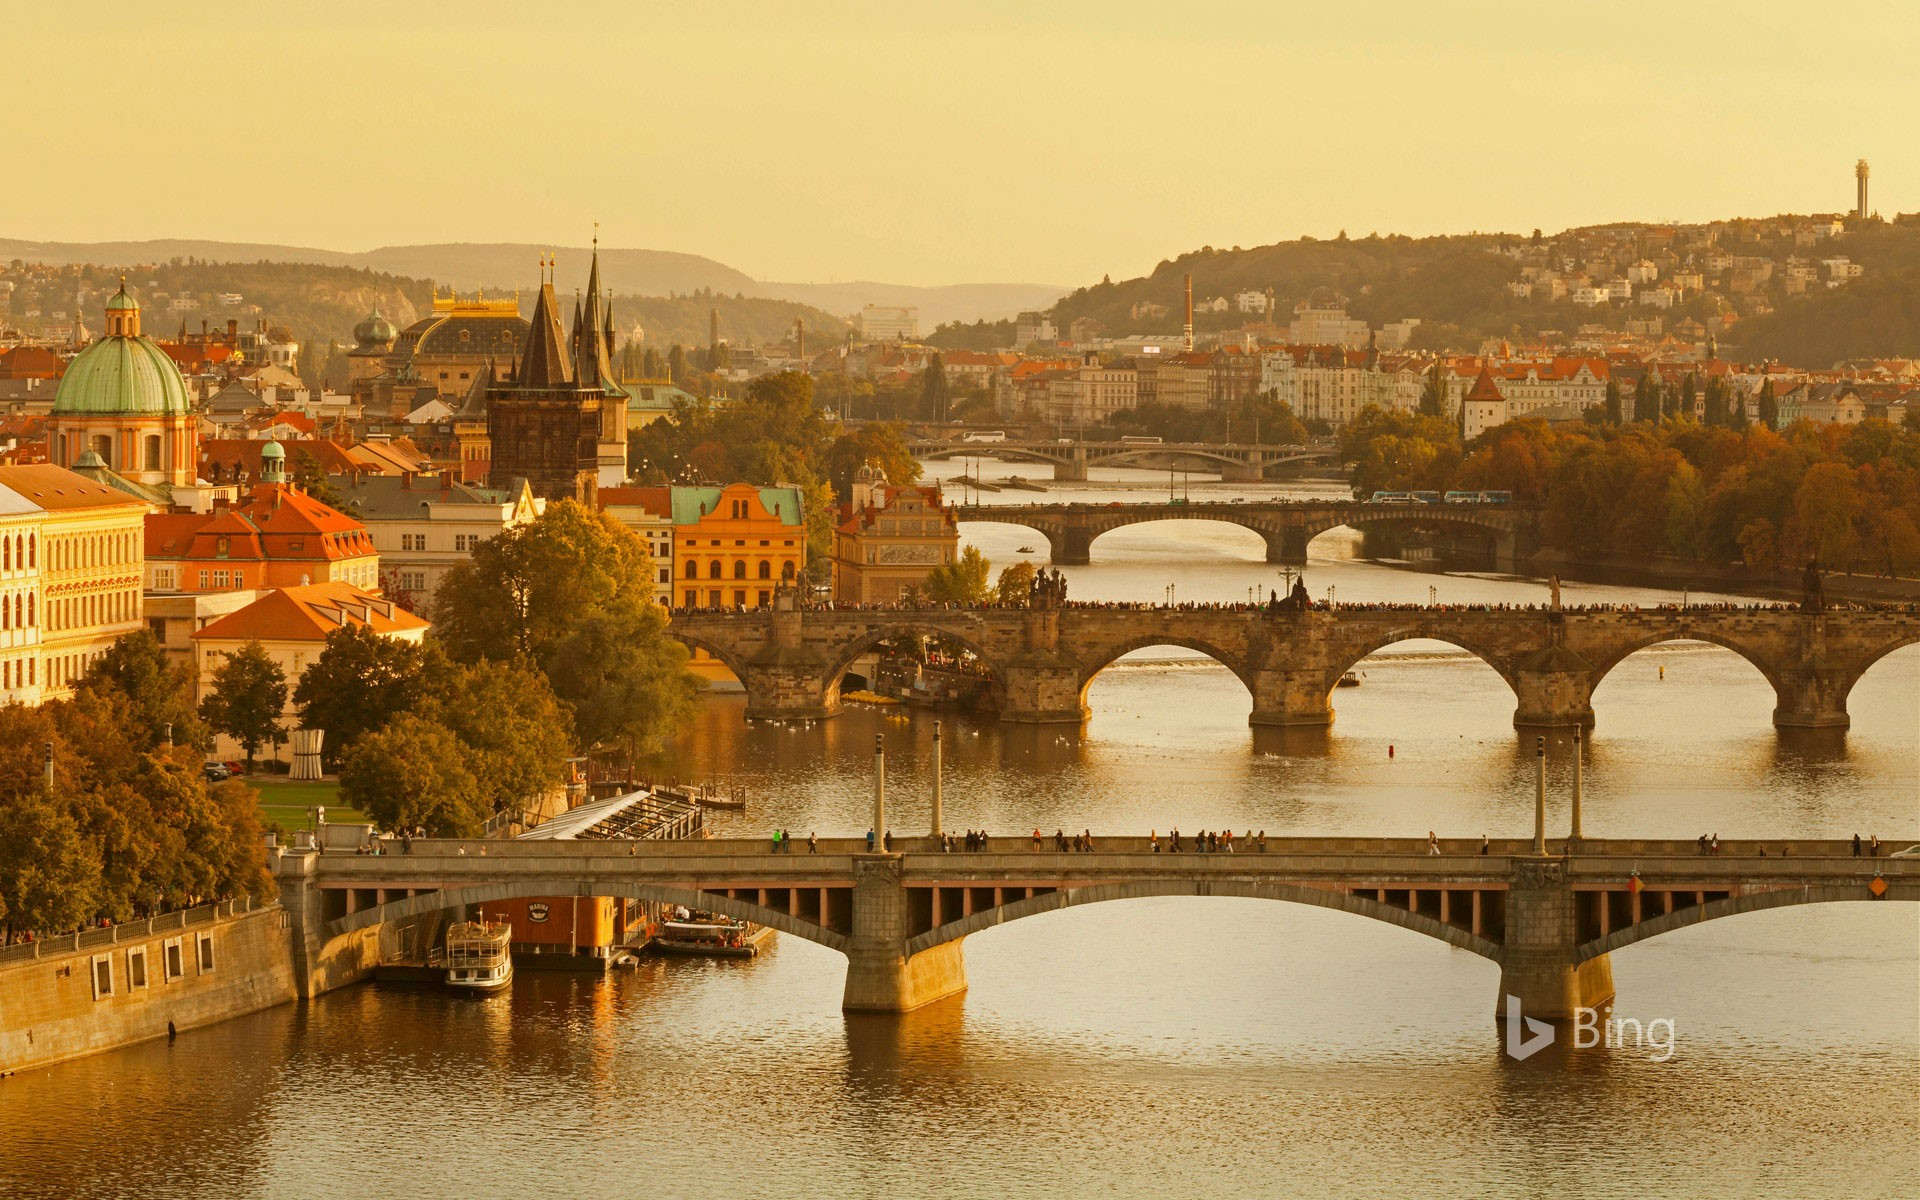 Bridges over the Vltava River, Prague, Czech Republic